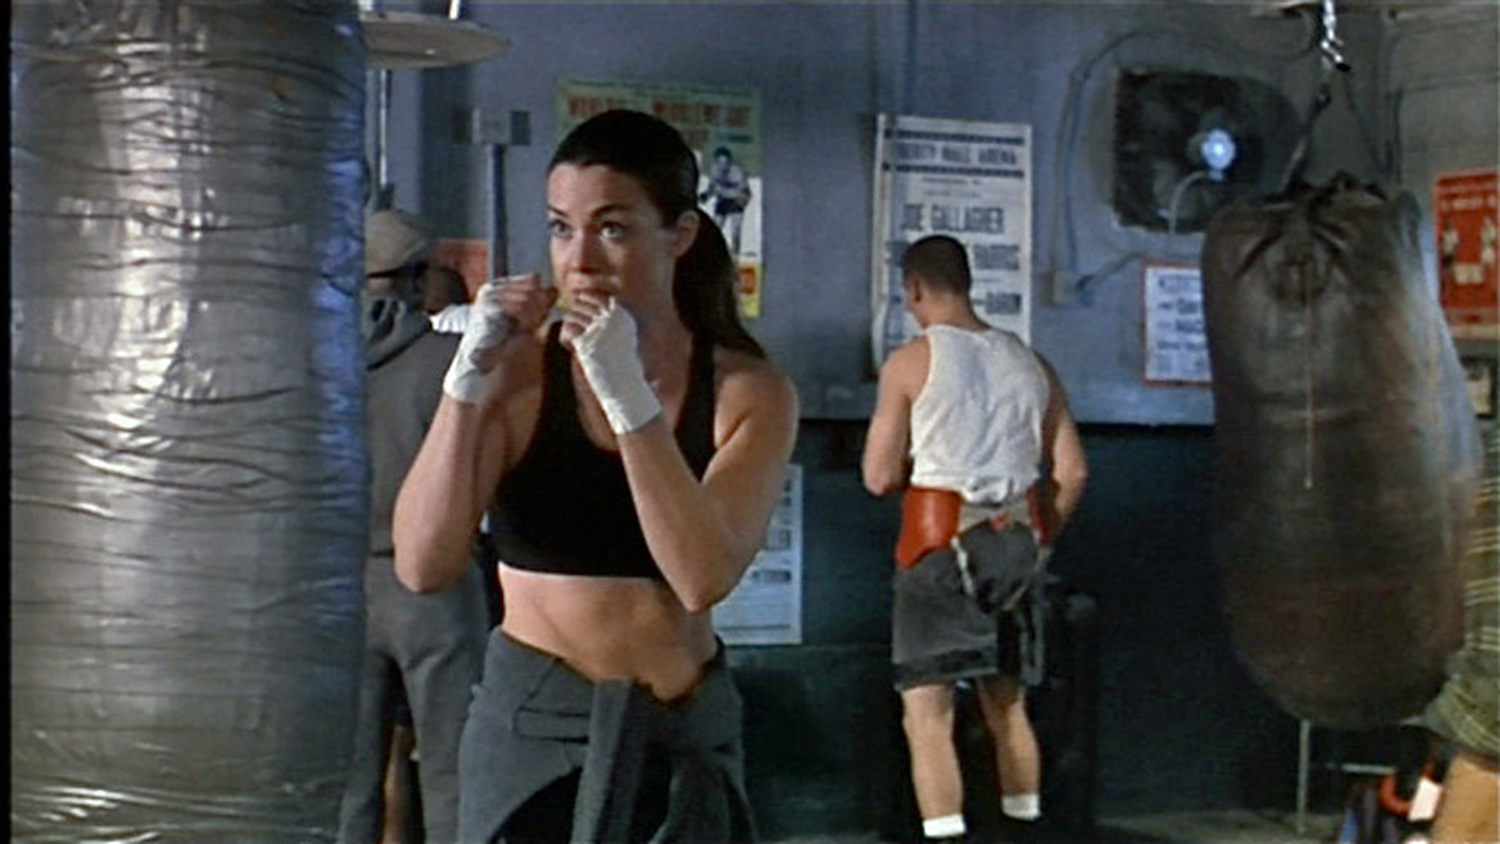 Lady assasin Andy (CLaudia Christian) in her gritty boxing gym, stage set.